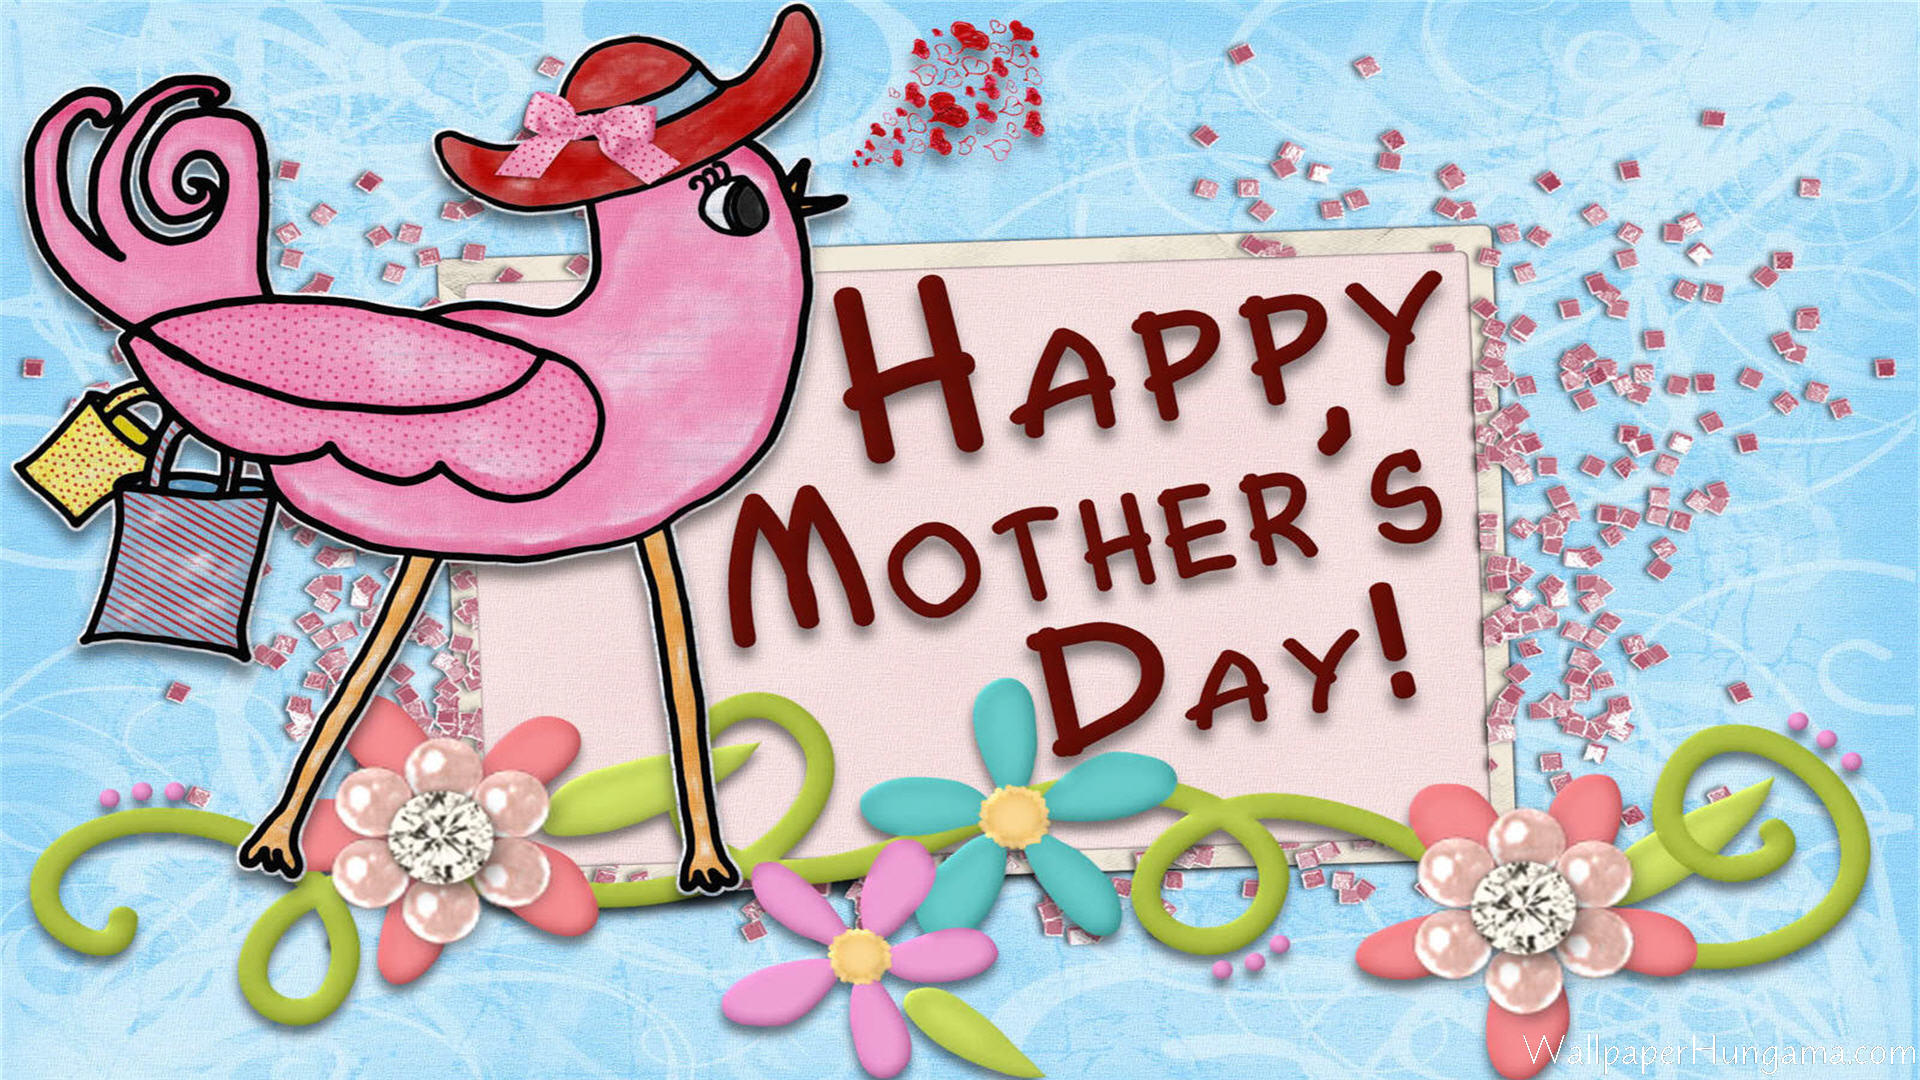 Happy Mothers Day 2014 Card Ideas: Happy Mother's Day Cards Images Quotes Pictures Download